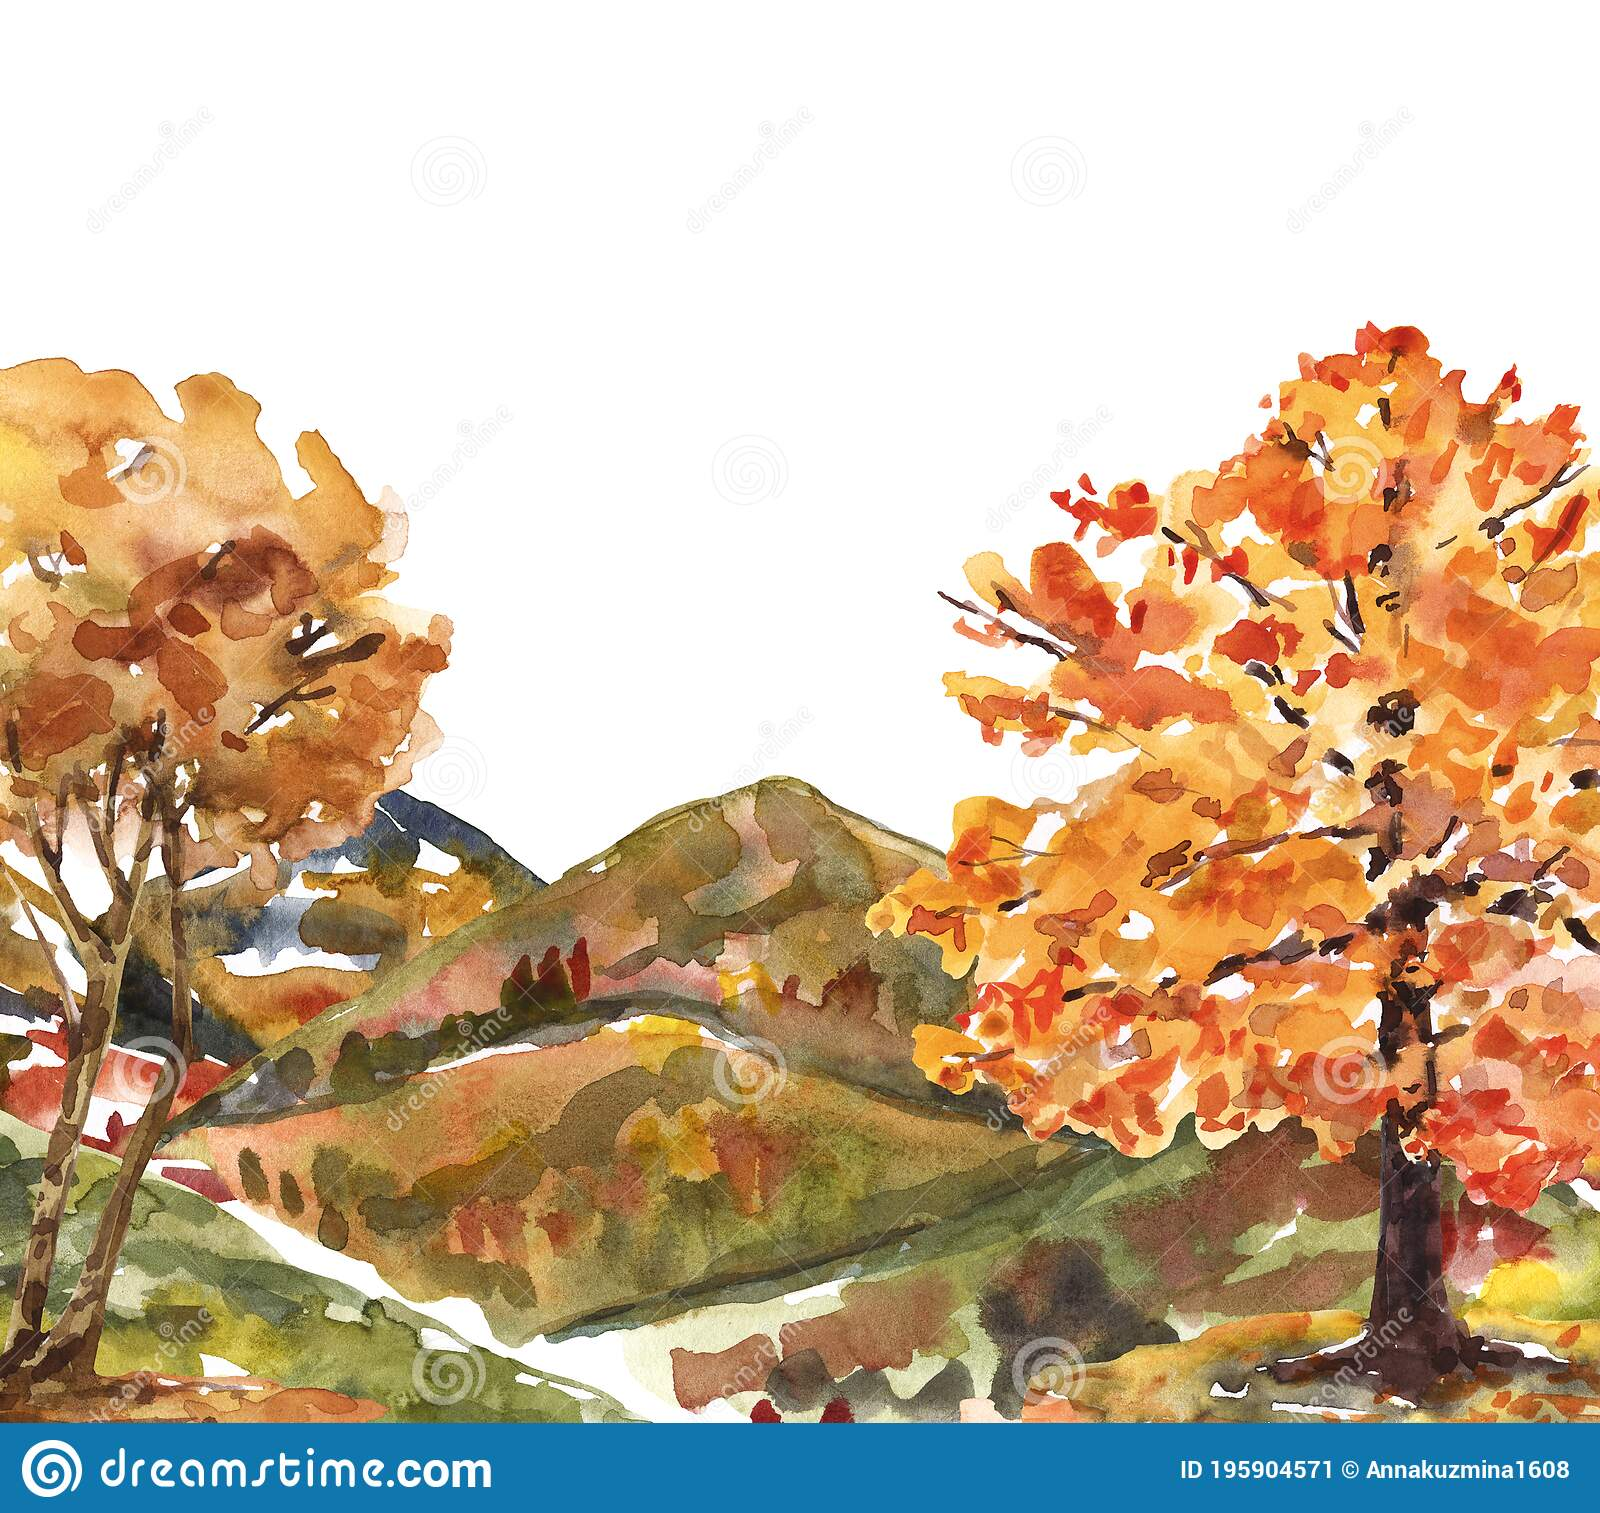 Watercolor Fall Mountain Landscape Painting Colorful Forest Trees On A Hill Illustration Stock Illustration Illustration Of Orange Tree 195904571